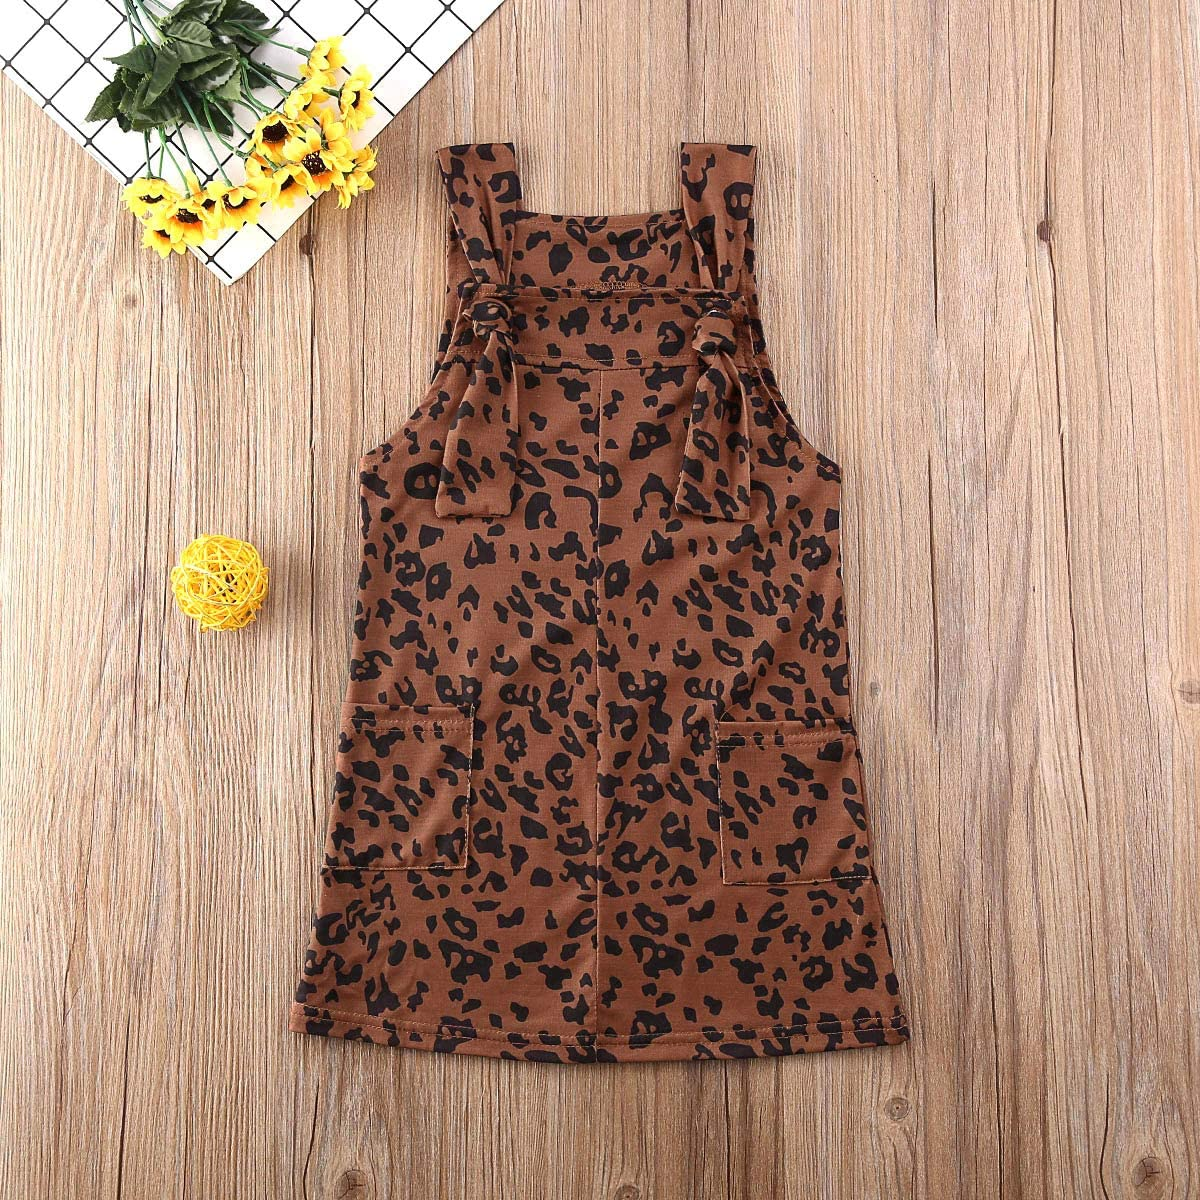 LZCYILANXIULSL Toddler Baby Girl Leopard Print Suspender Dress Bib Overalls Dresses Outfit Summer Clothes